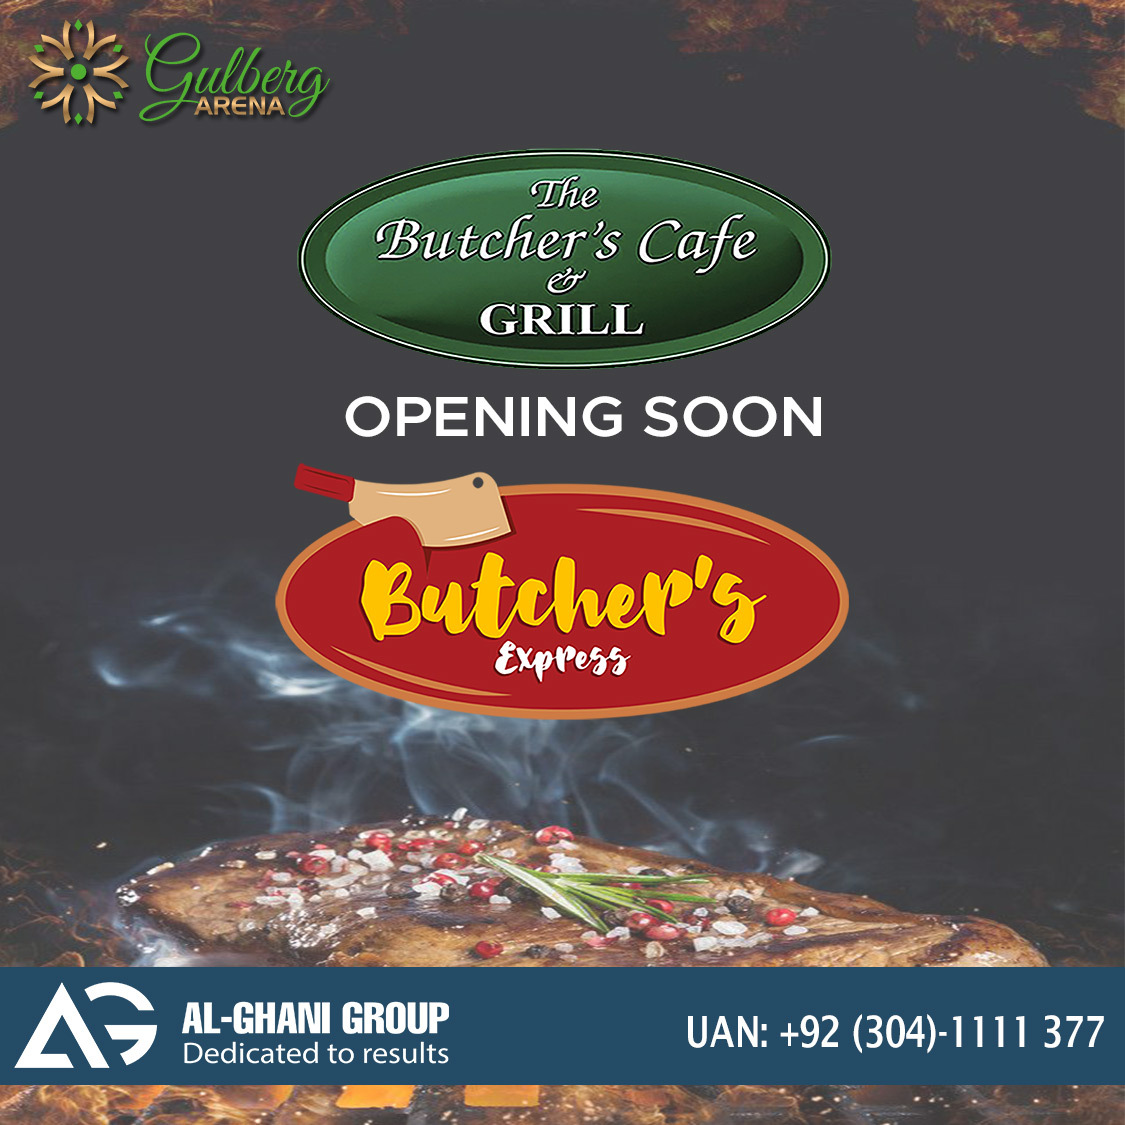 Butchers Express outlet in gulberg arena food court at Gulberg Greens Islamabad